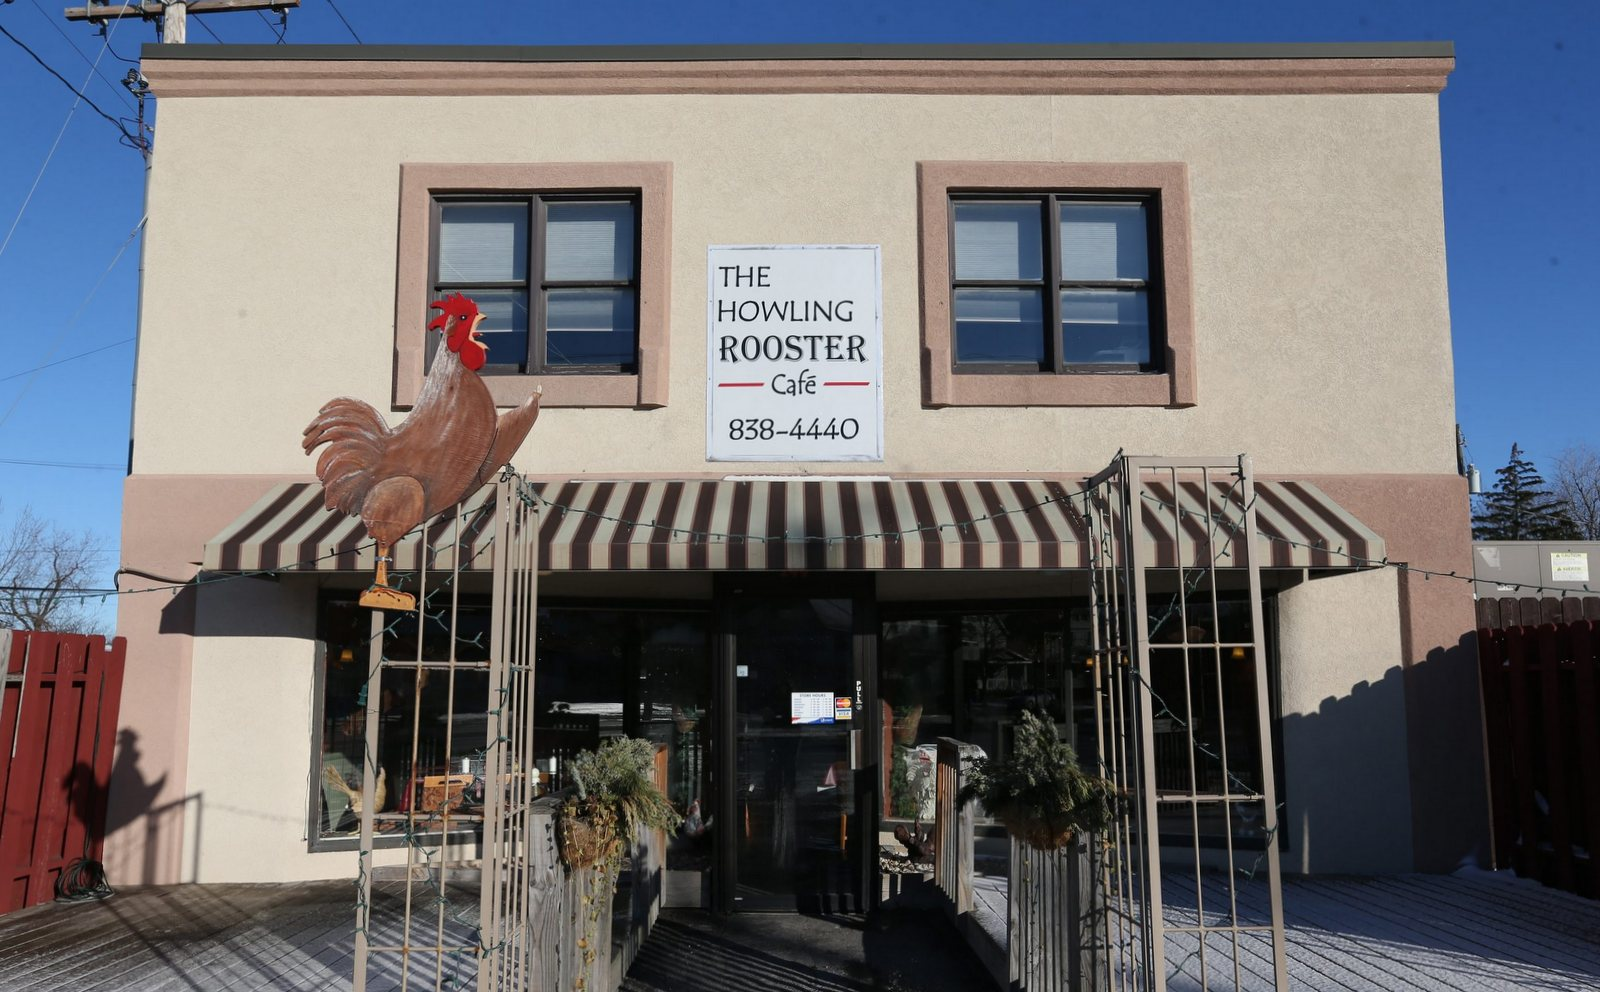 The Howling Rooster Cafe, seen here last January, has become Epicurus once again. (Sharon Cantillon/Buffalo News)